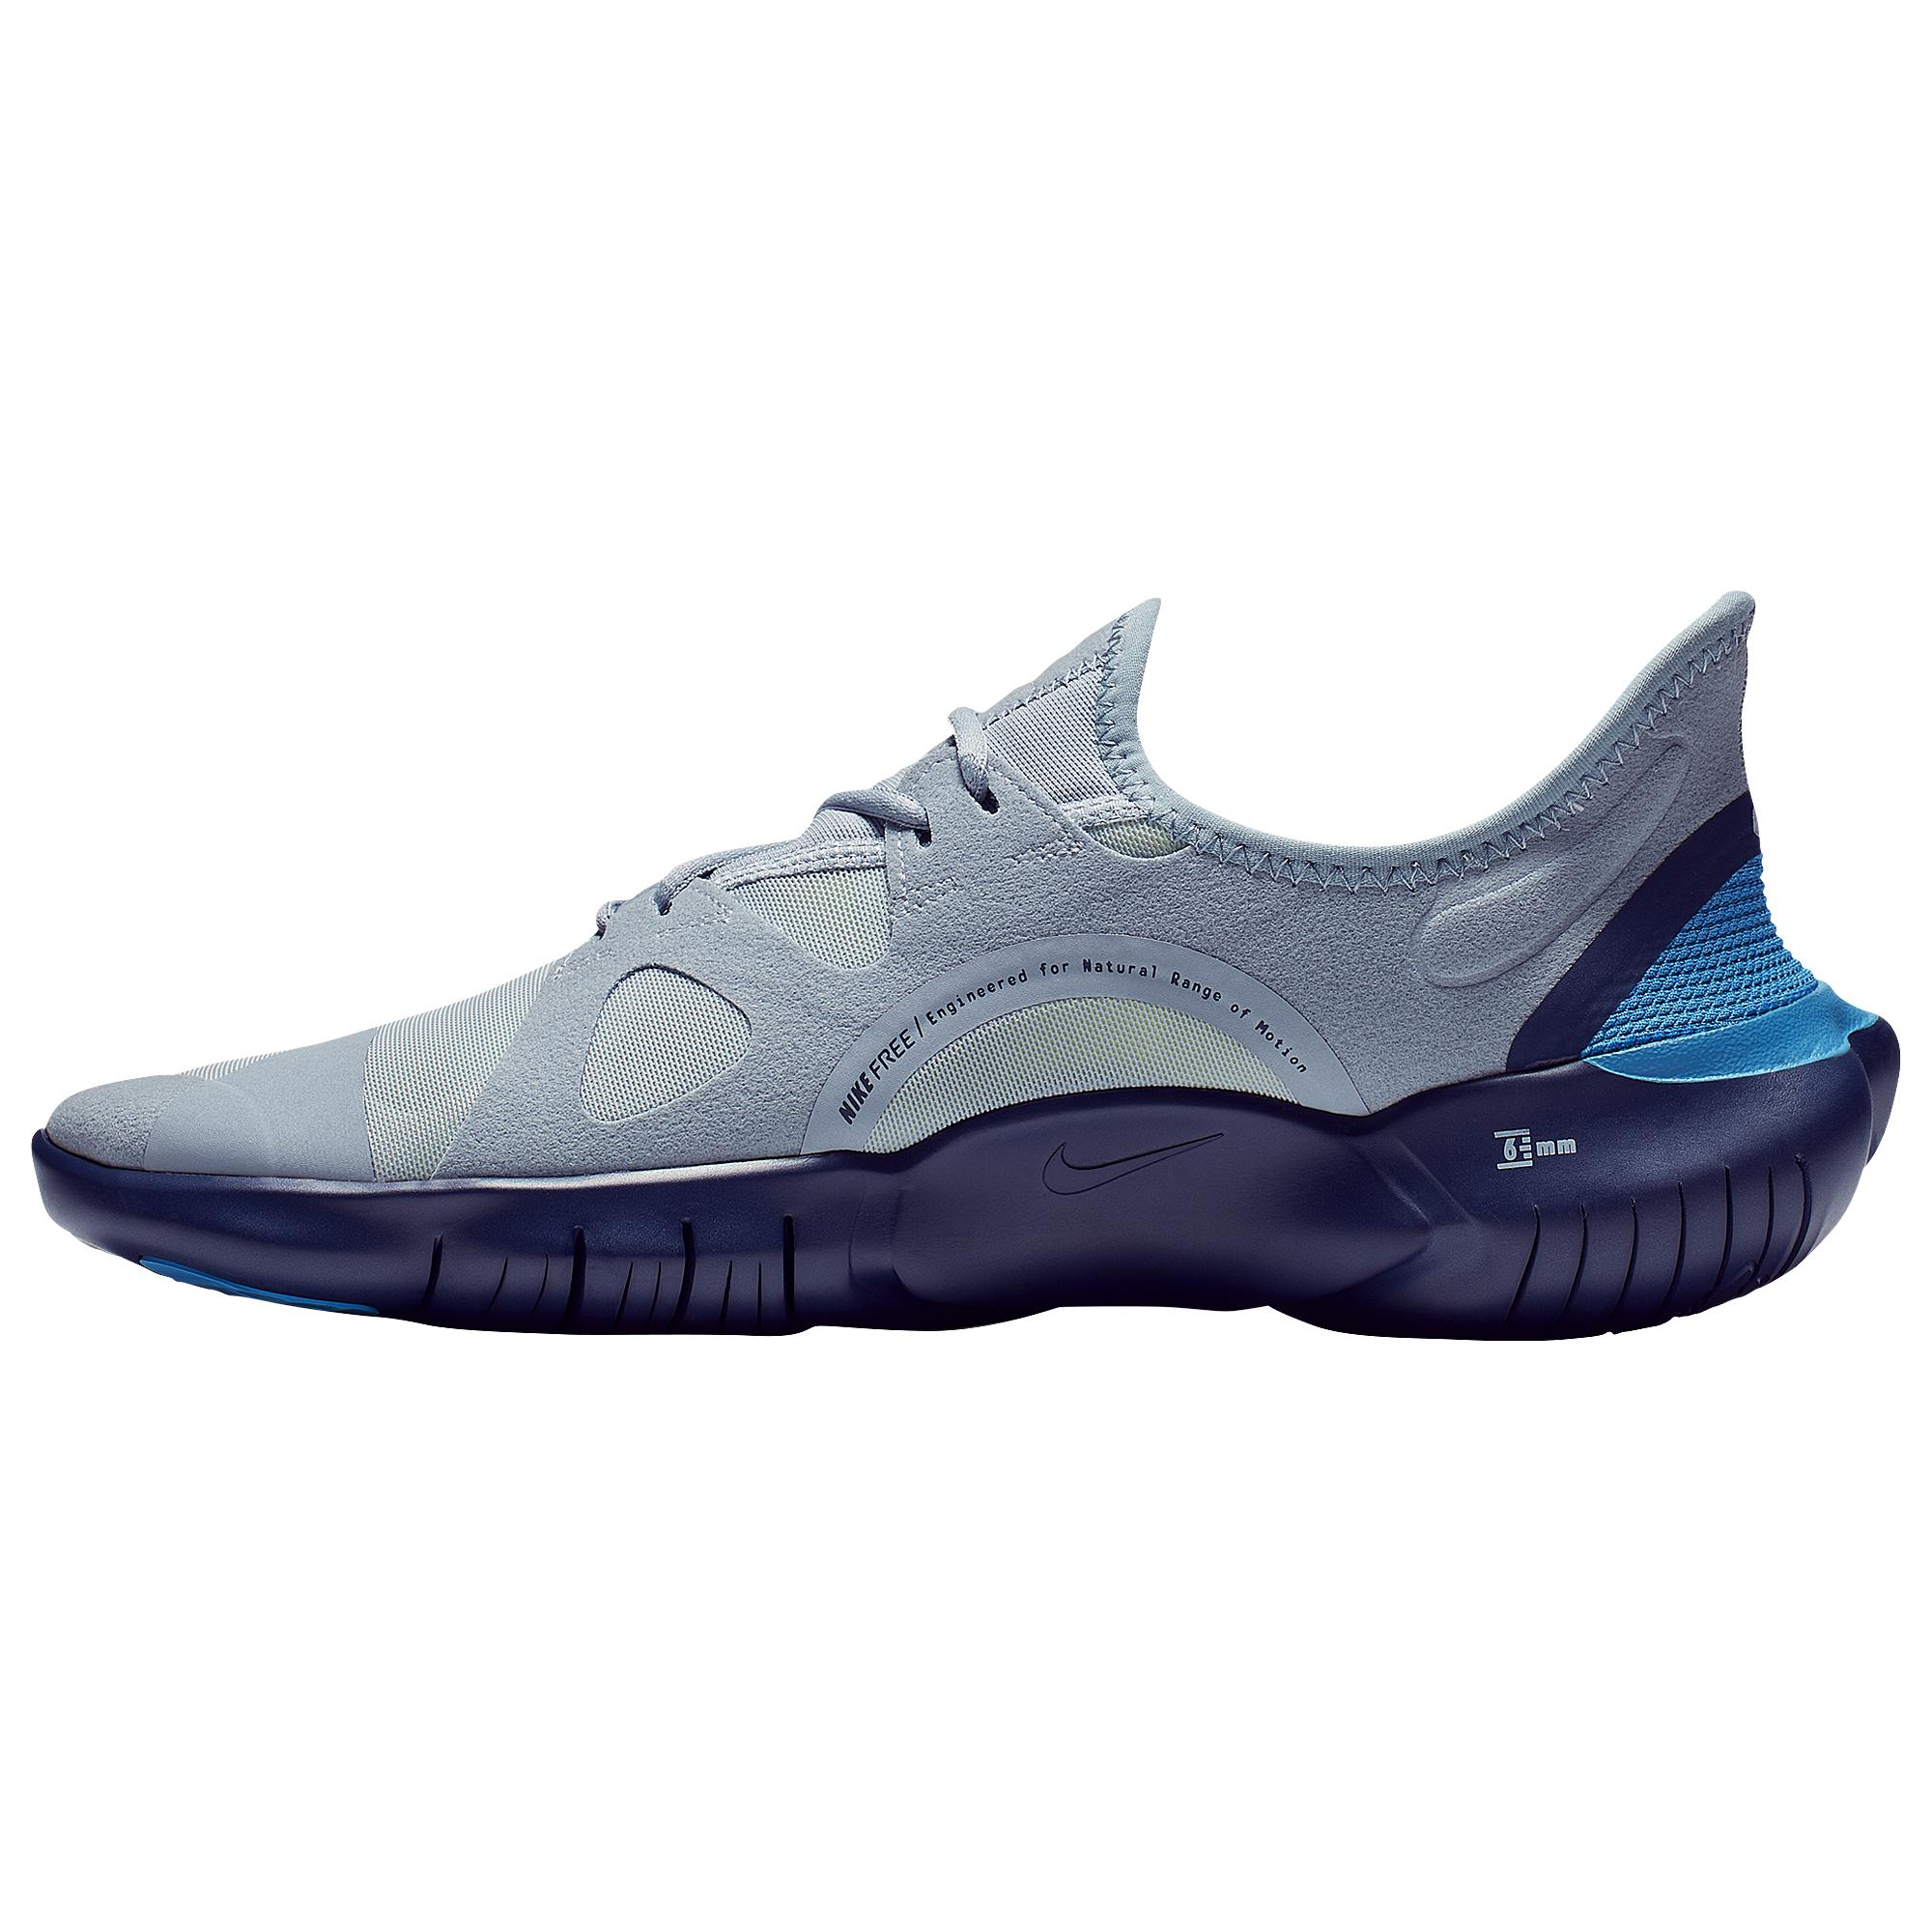 finest selection d1b4a b4f2a Nike Free Rn 5.0 in Blue for Men - Lyst